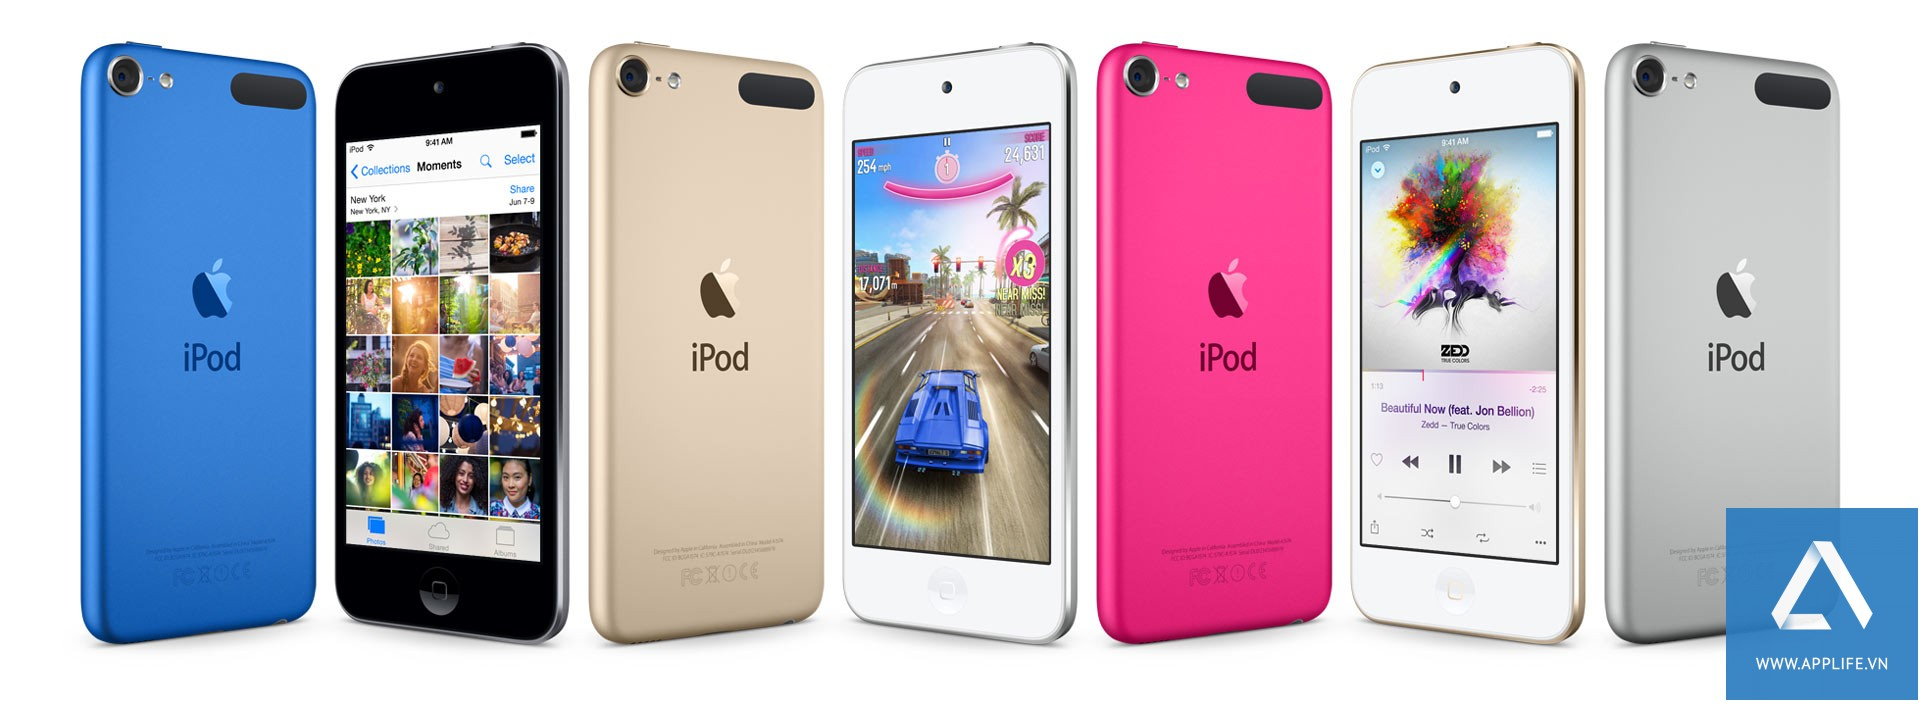 Thiết kế của iPod Touch 6 hiện nay